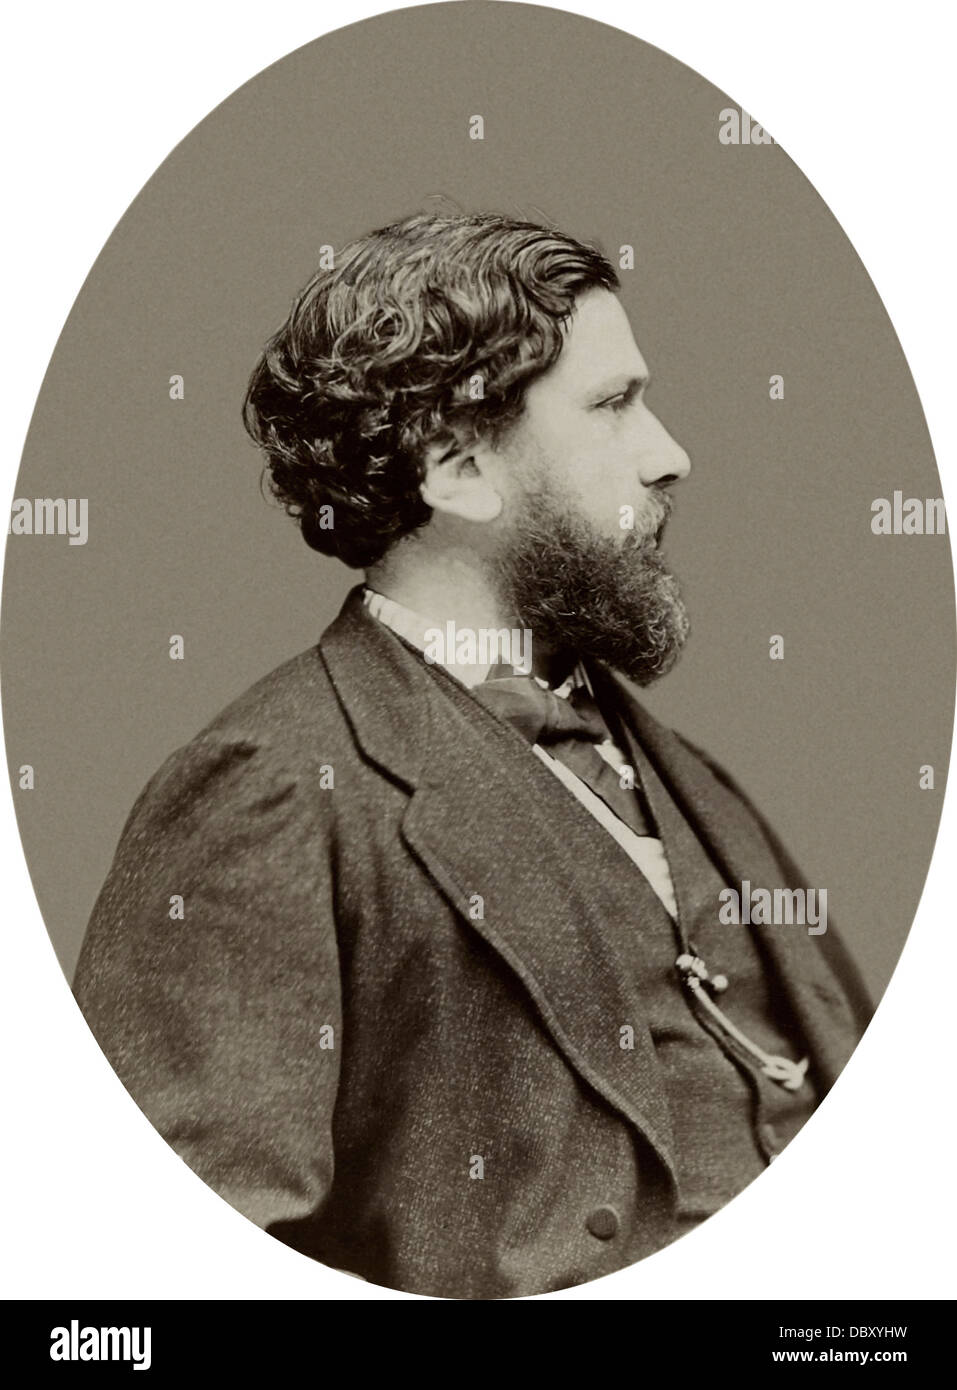 Philippe Burty (1830 - 1890), french art critics - Stock Image